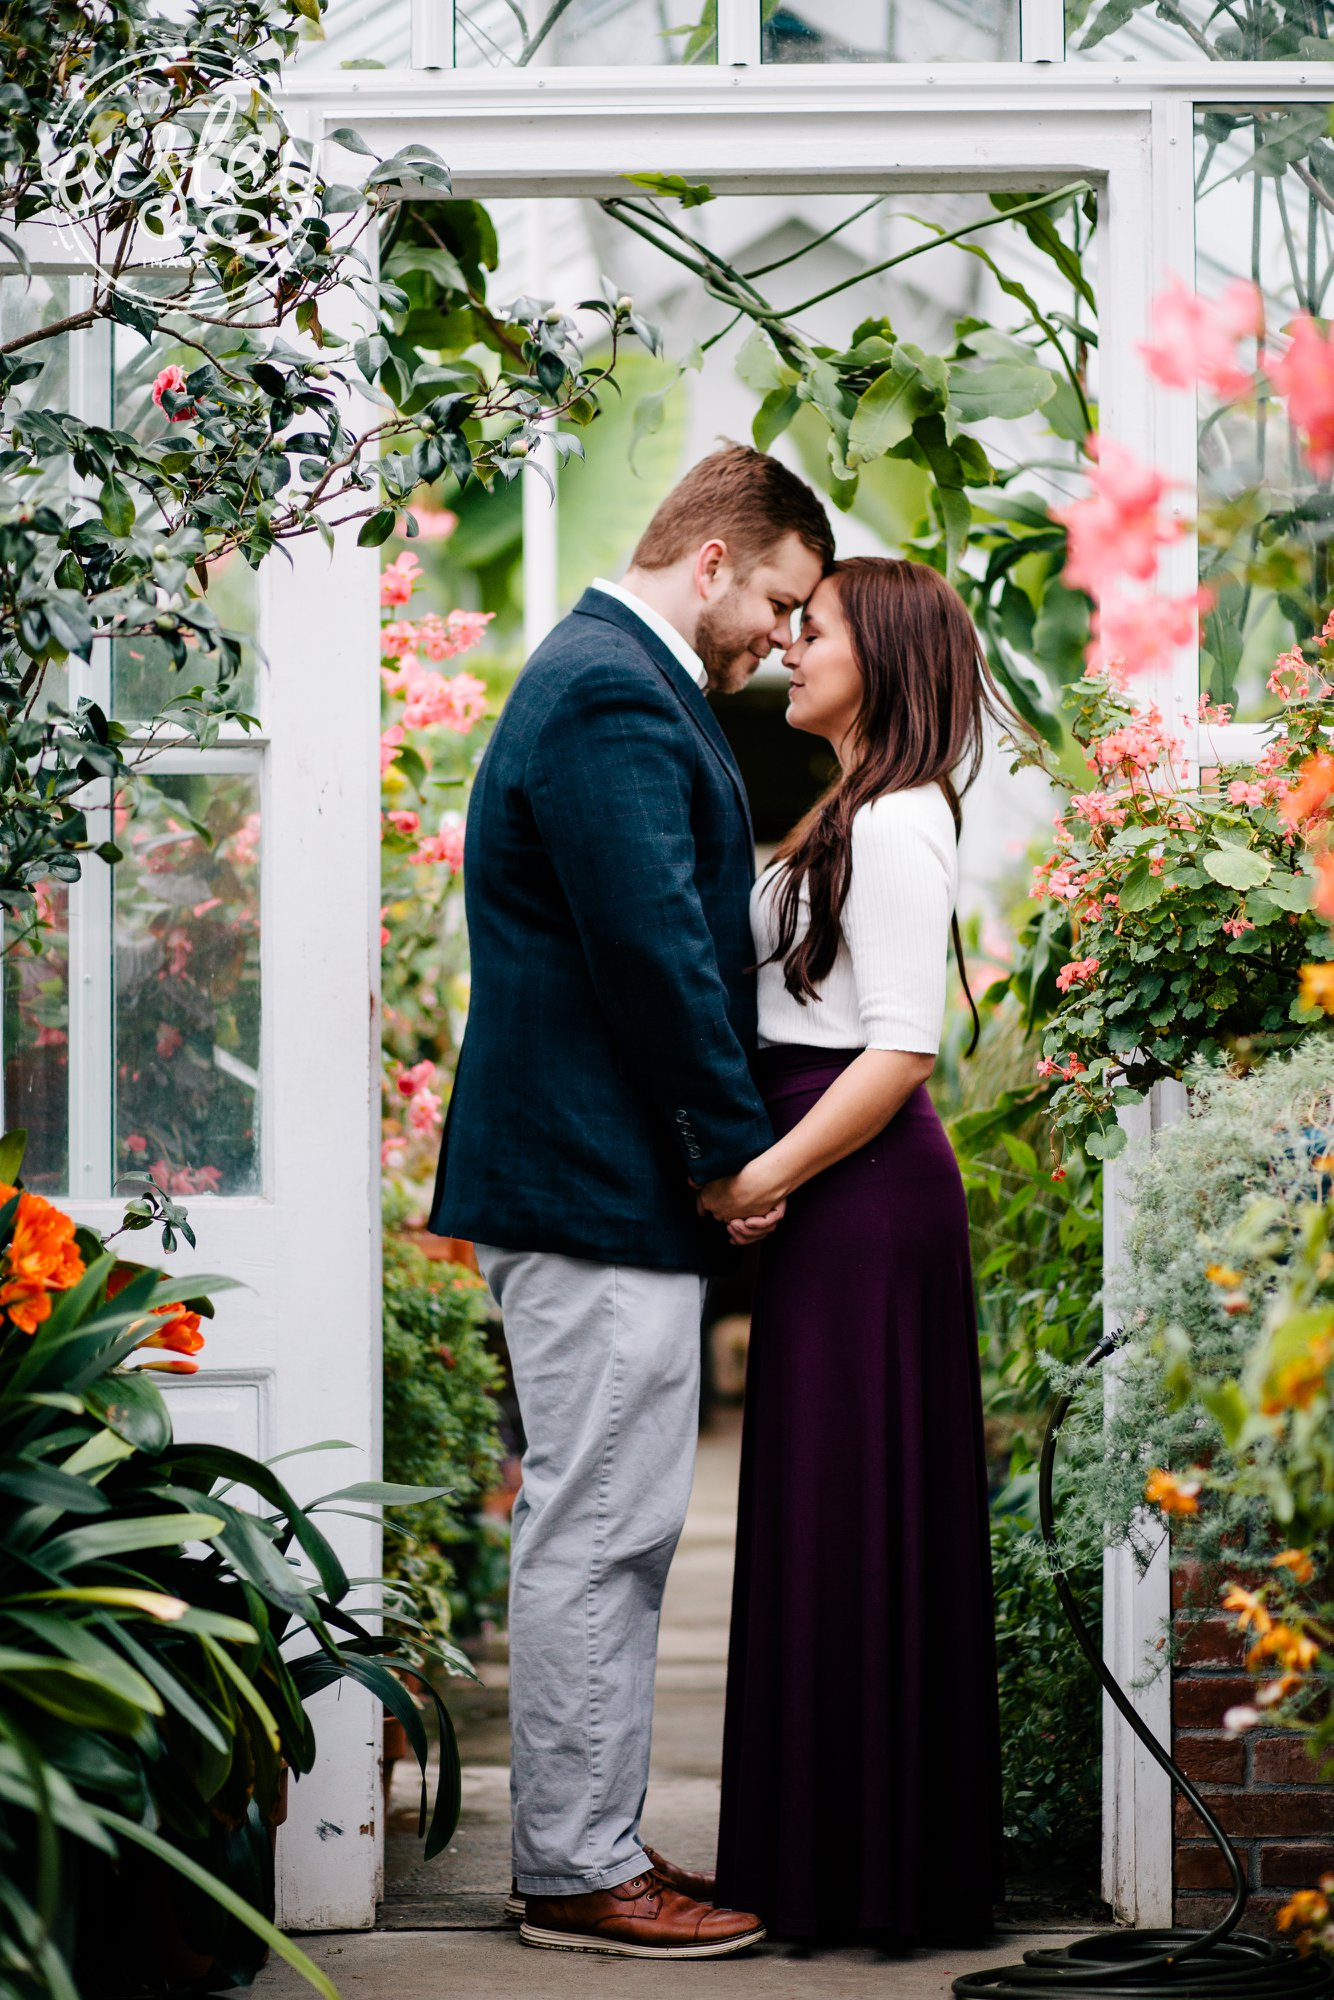 Justine + Brian embrace during their engagement session at Blithewold Mansion, Gardens & Arboretum (Bristol, RI)